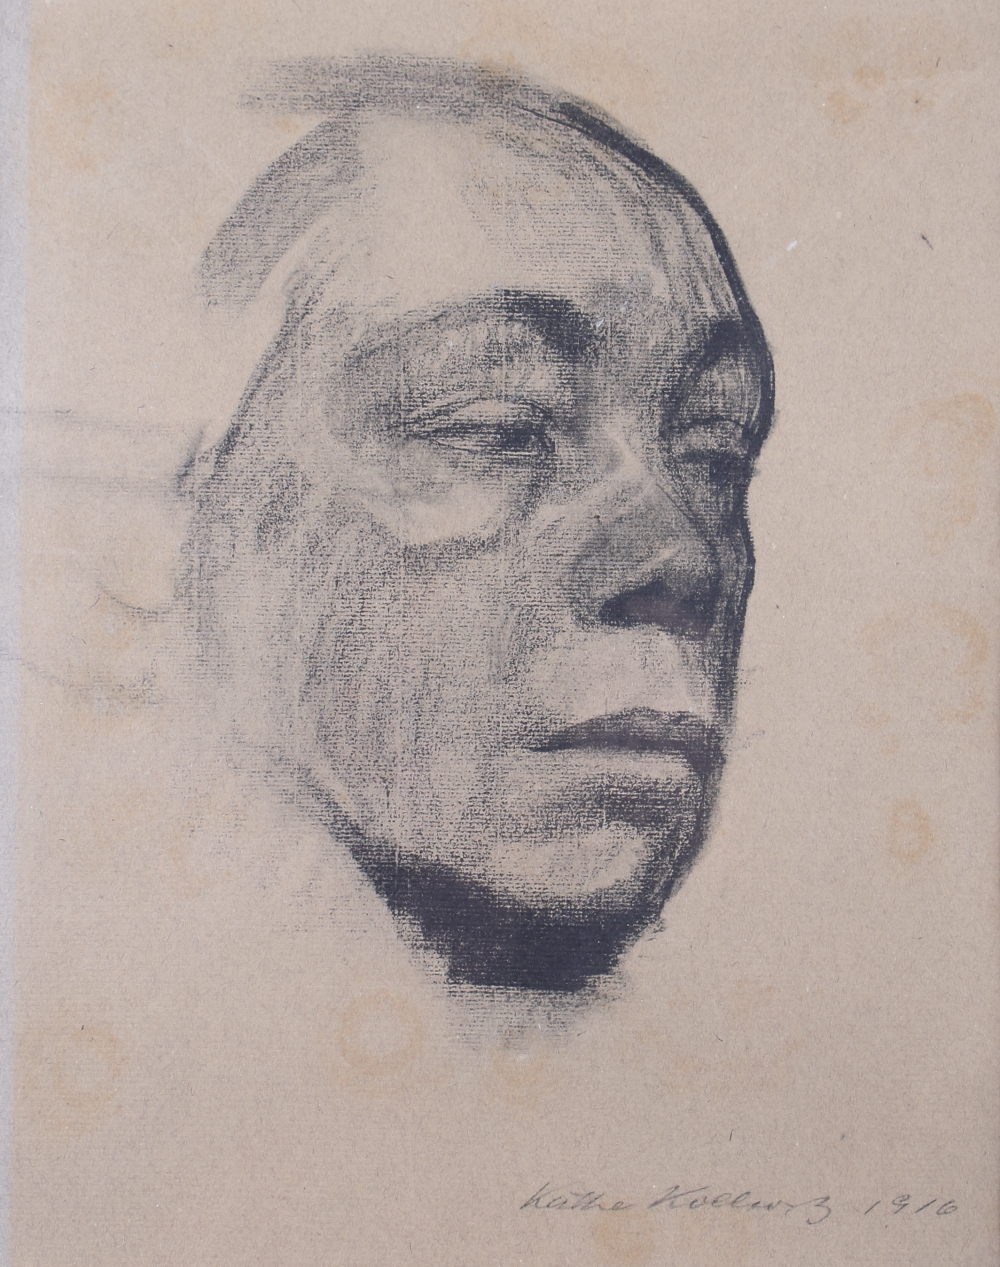 "Lot 359 - Kathe Kollwitz, 1916: monochrome print portrait of a woman, 11 1/2"" x 13 1/2"", in wash line mount"